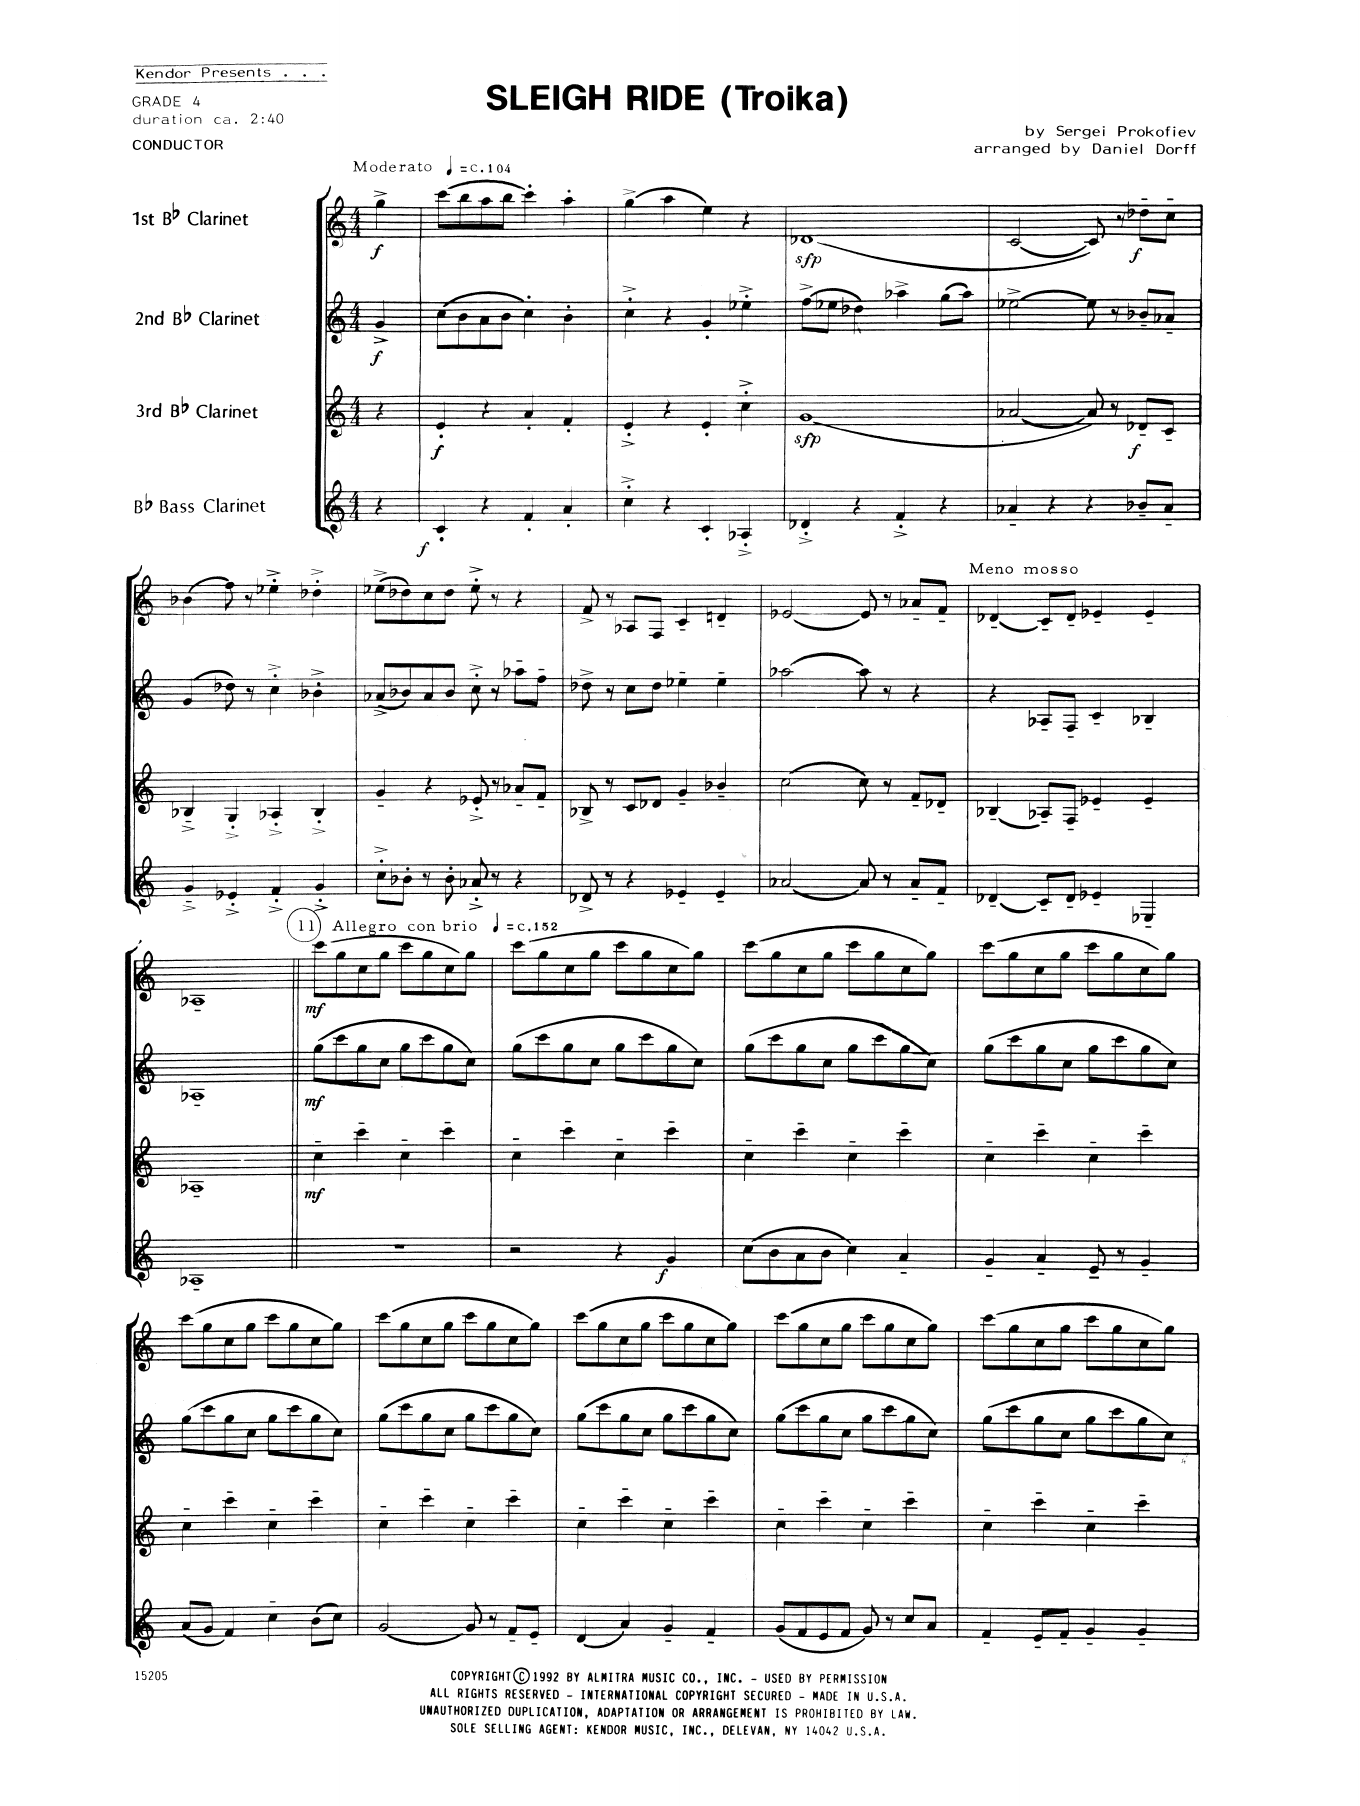 Sleigh Ride (Troika) (COMPLETE) sheet music for clarinet quartet by Daniel Dorff and Prokofiev. Score Image Preview.